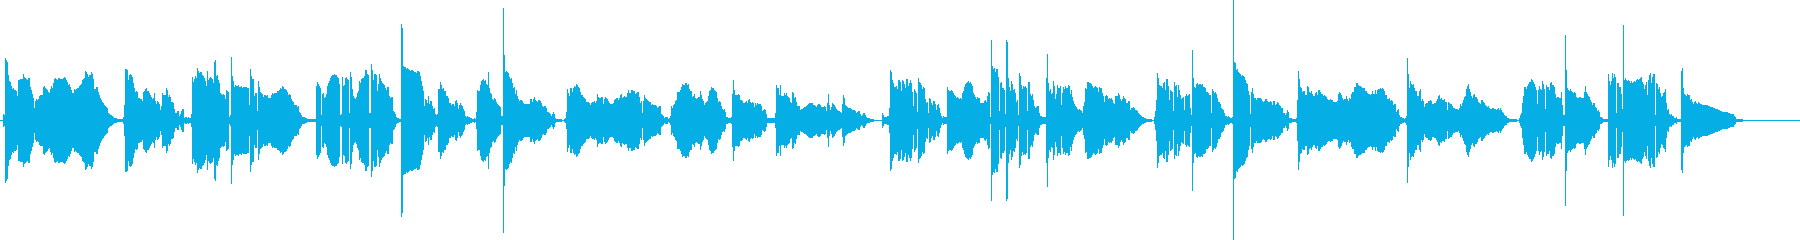 Adult Arabian jazz's reproduced waveform